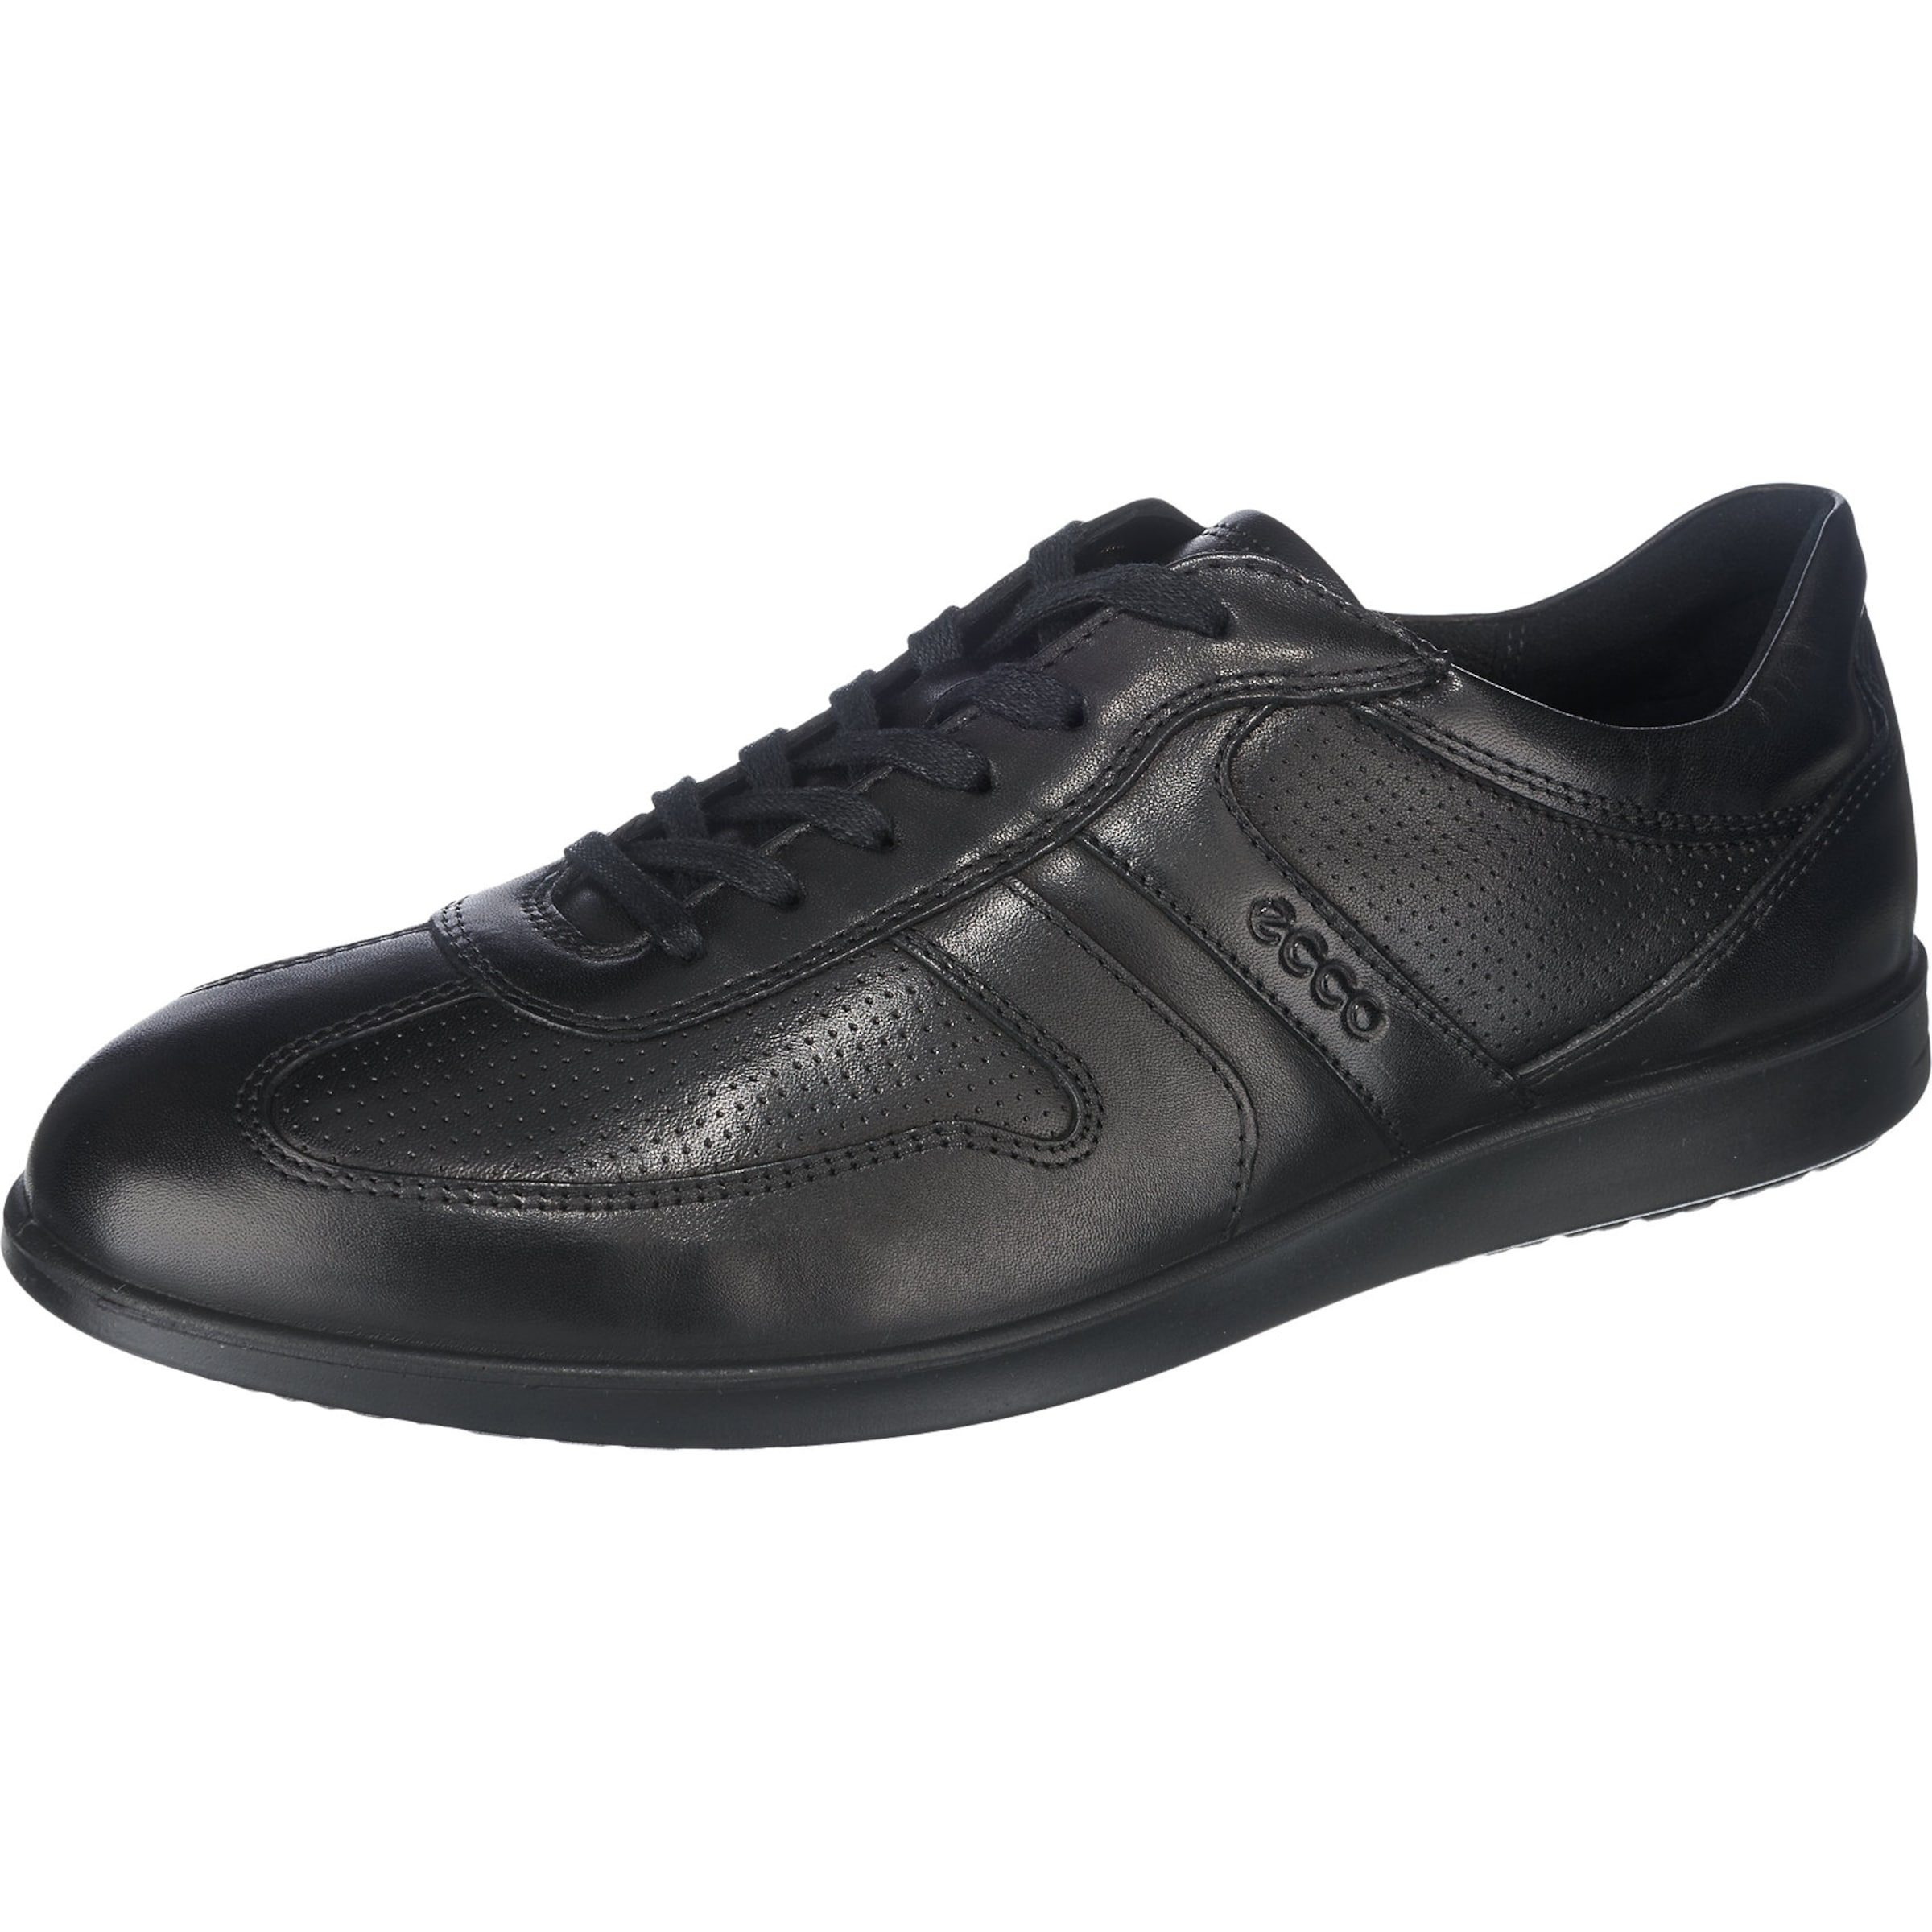 Ecco 'indianapolis' Schuhe Schwarz In In Ecco 'indianapolis' Schuhe LUSGMzqpV